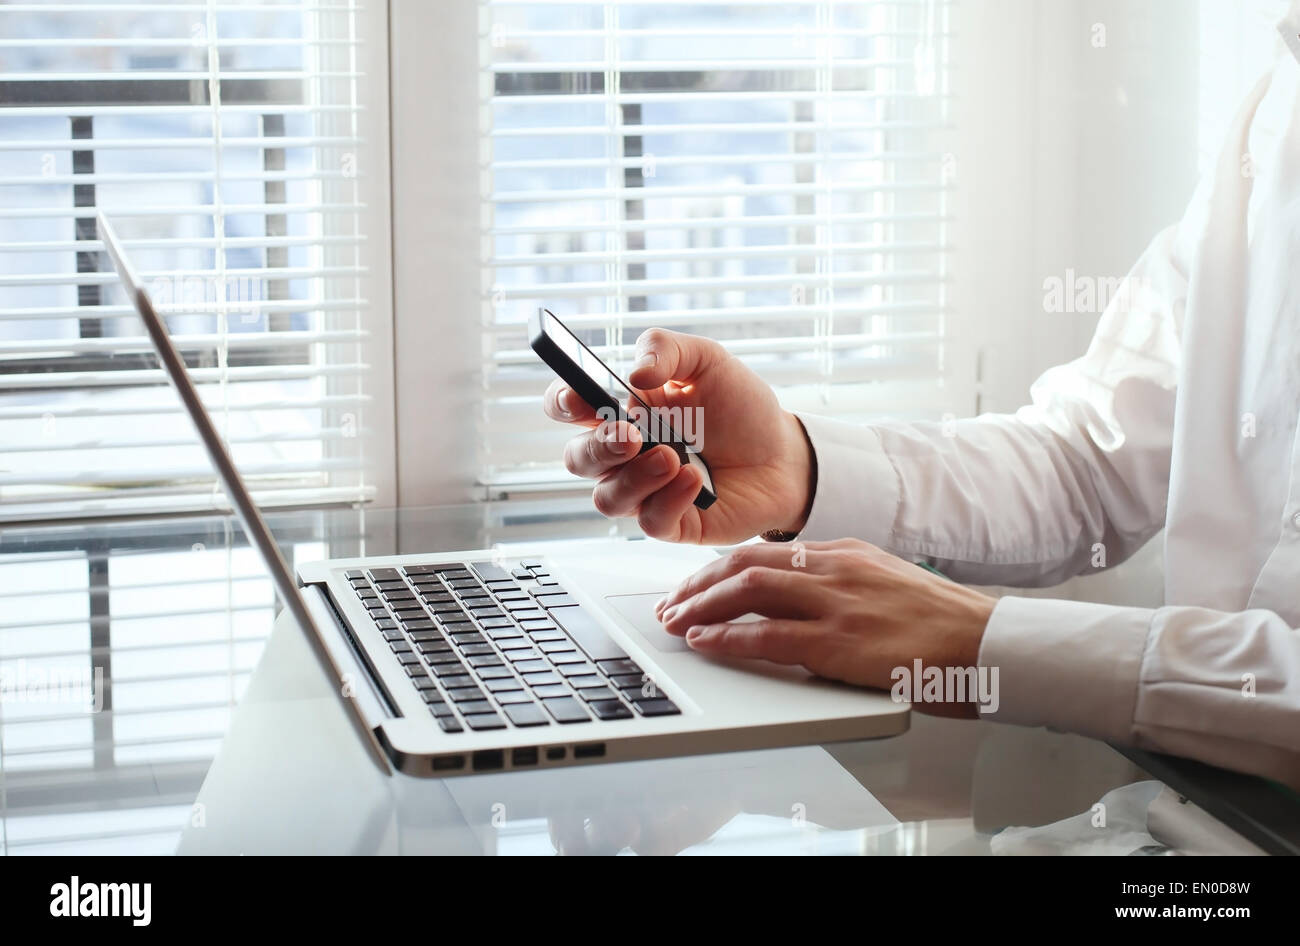 business man using smart phone in the office - Stock Image